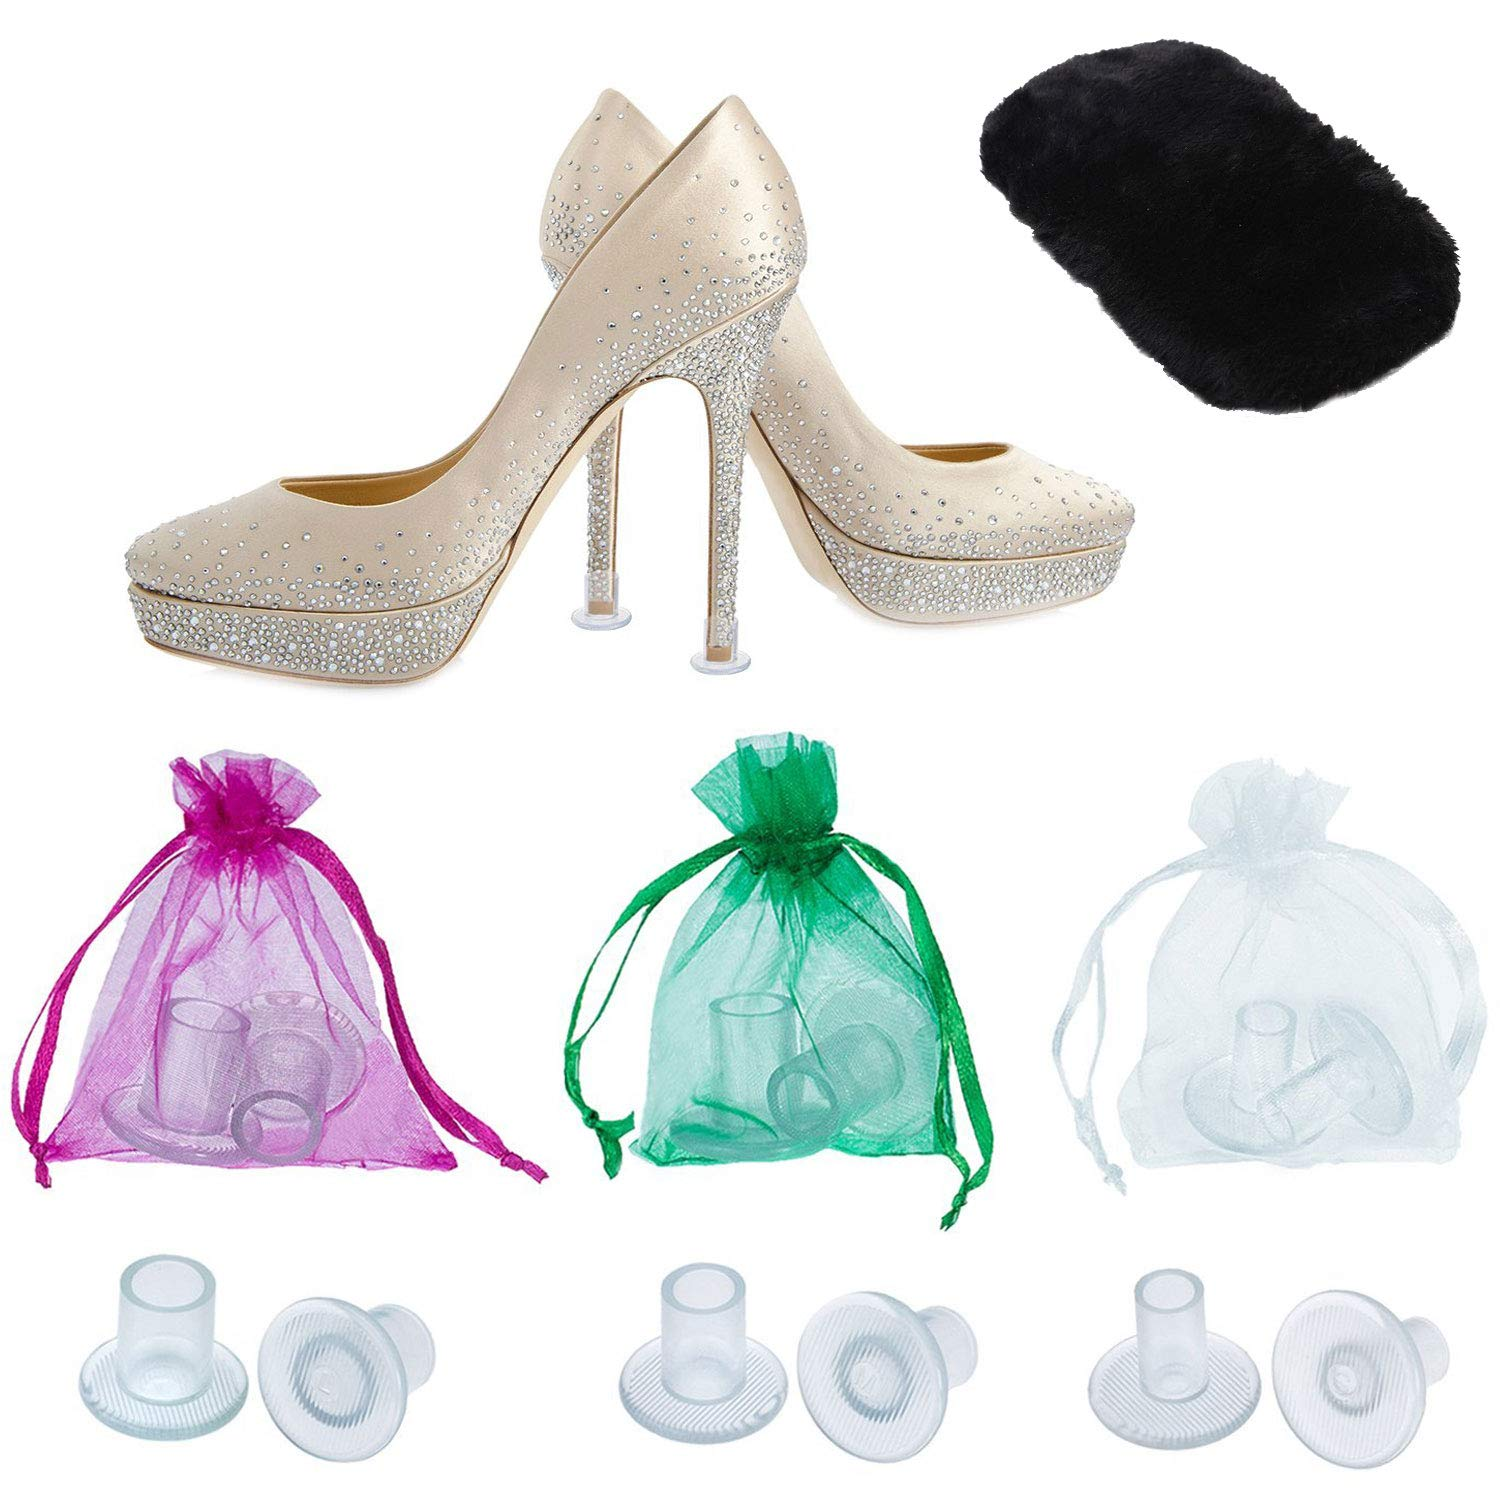 689f4c32b1 High Heel Protectors by MEGON - Heels Stopper for Women's Shoes, 6 pairs  Small/Medium/Large - Perfect for Weddings, Races, Formal Occasions -  Protecting ...